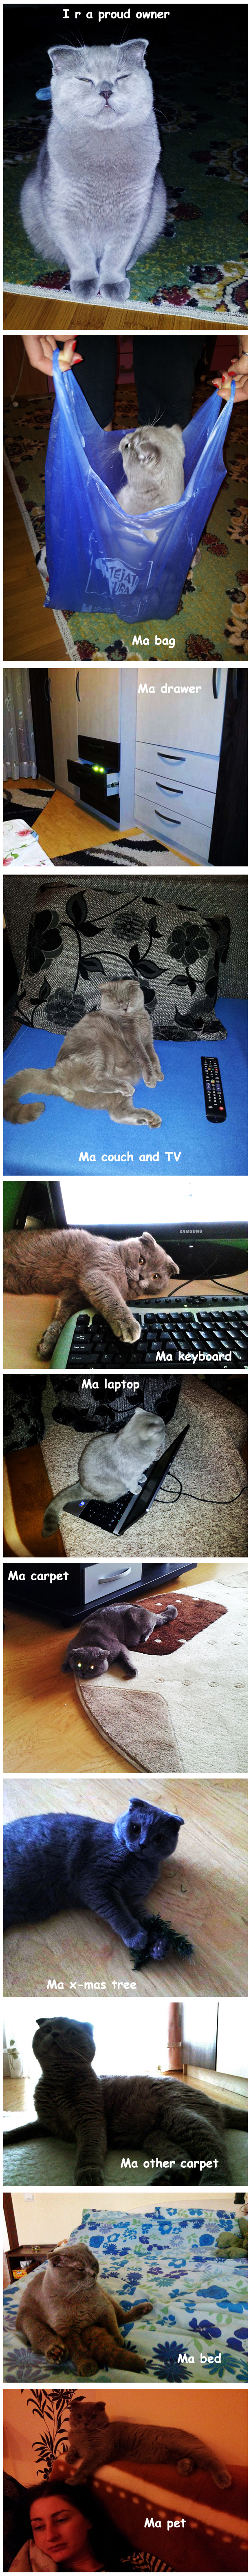 My Cat Charlie Owns Everything [photo collage]